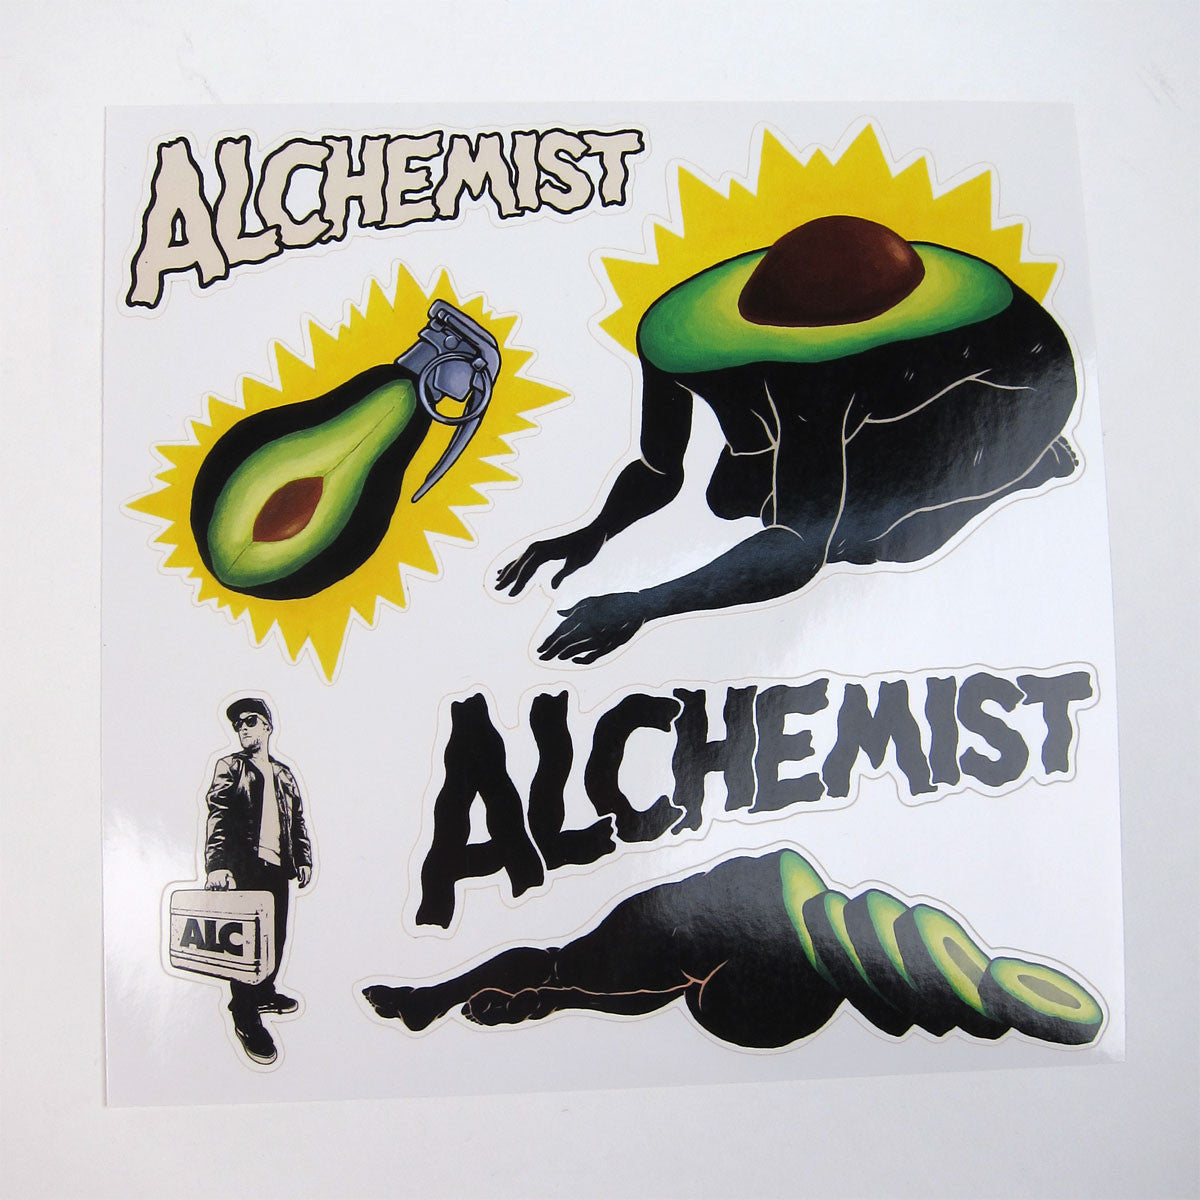 The Alchemist: Israeli Salad (Colored Vinyl) Vinyl 2LP